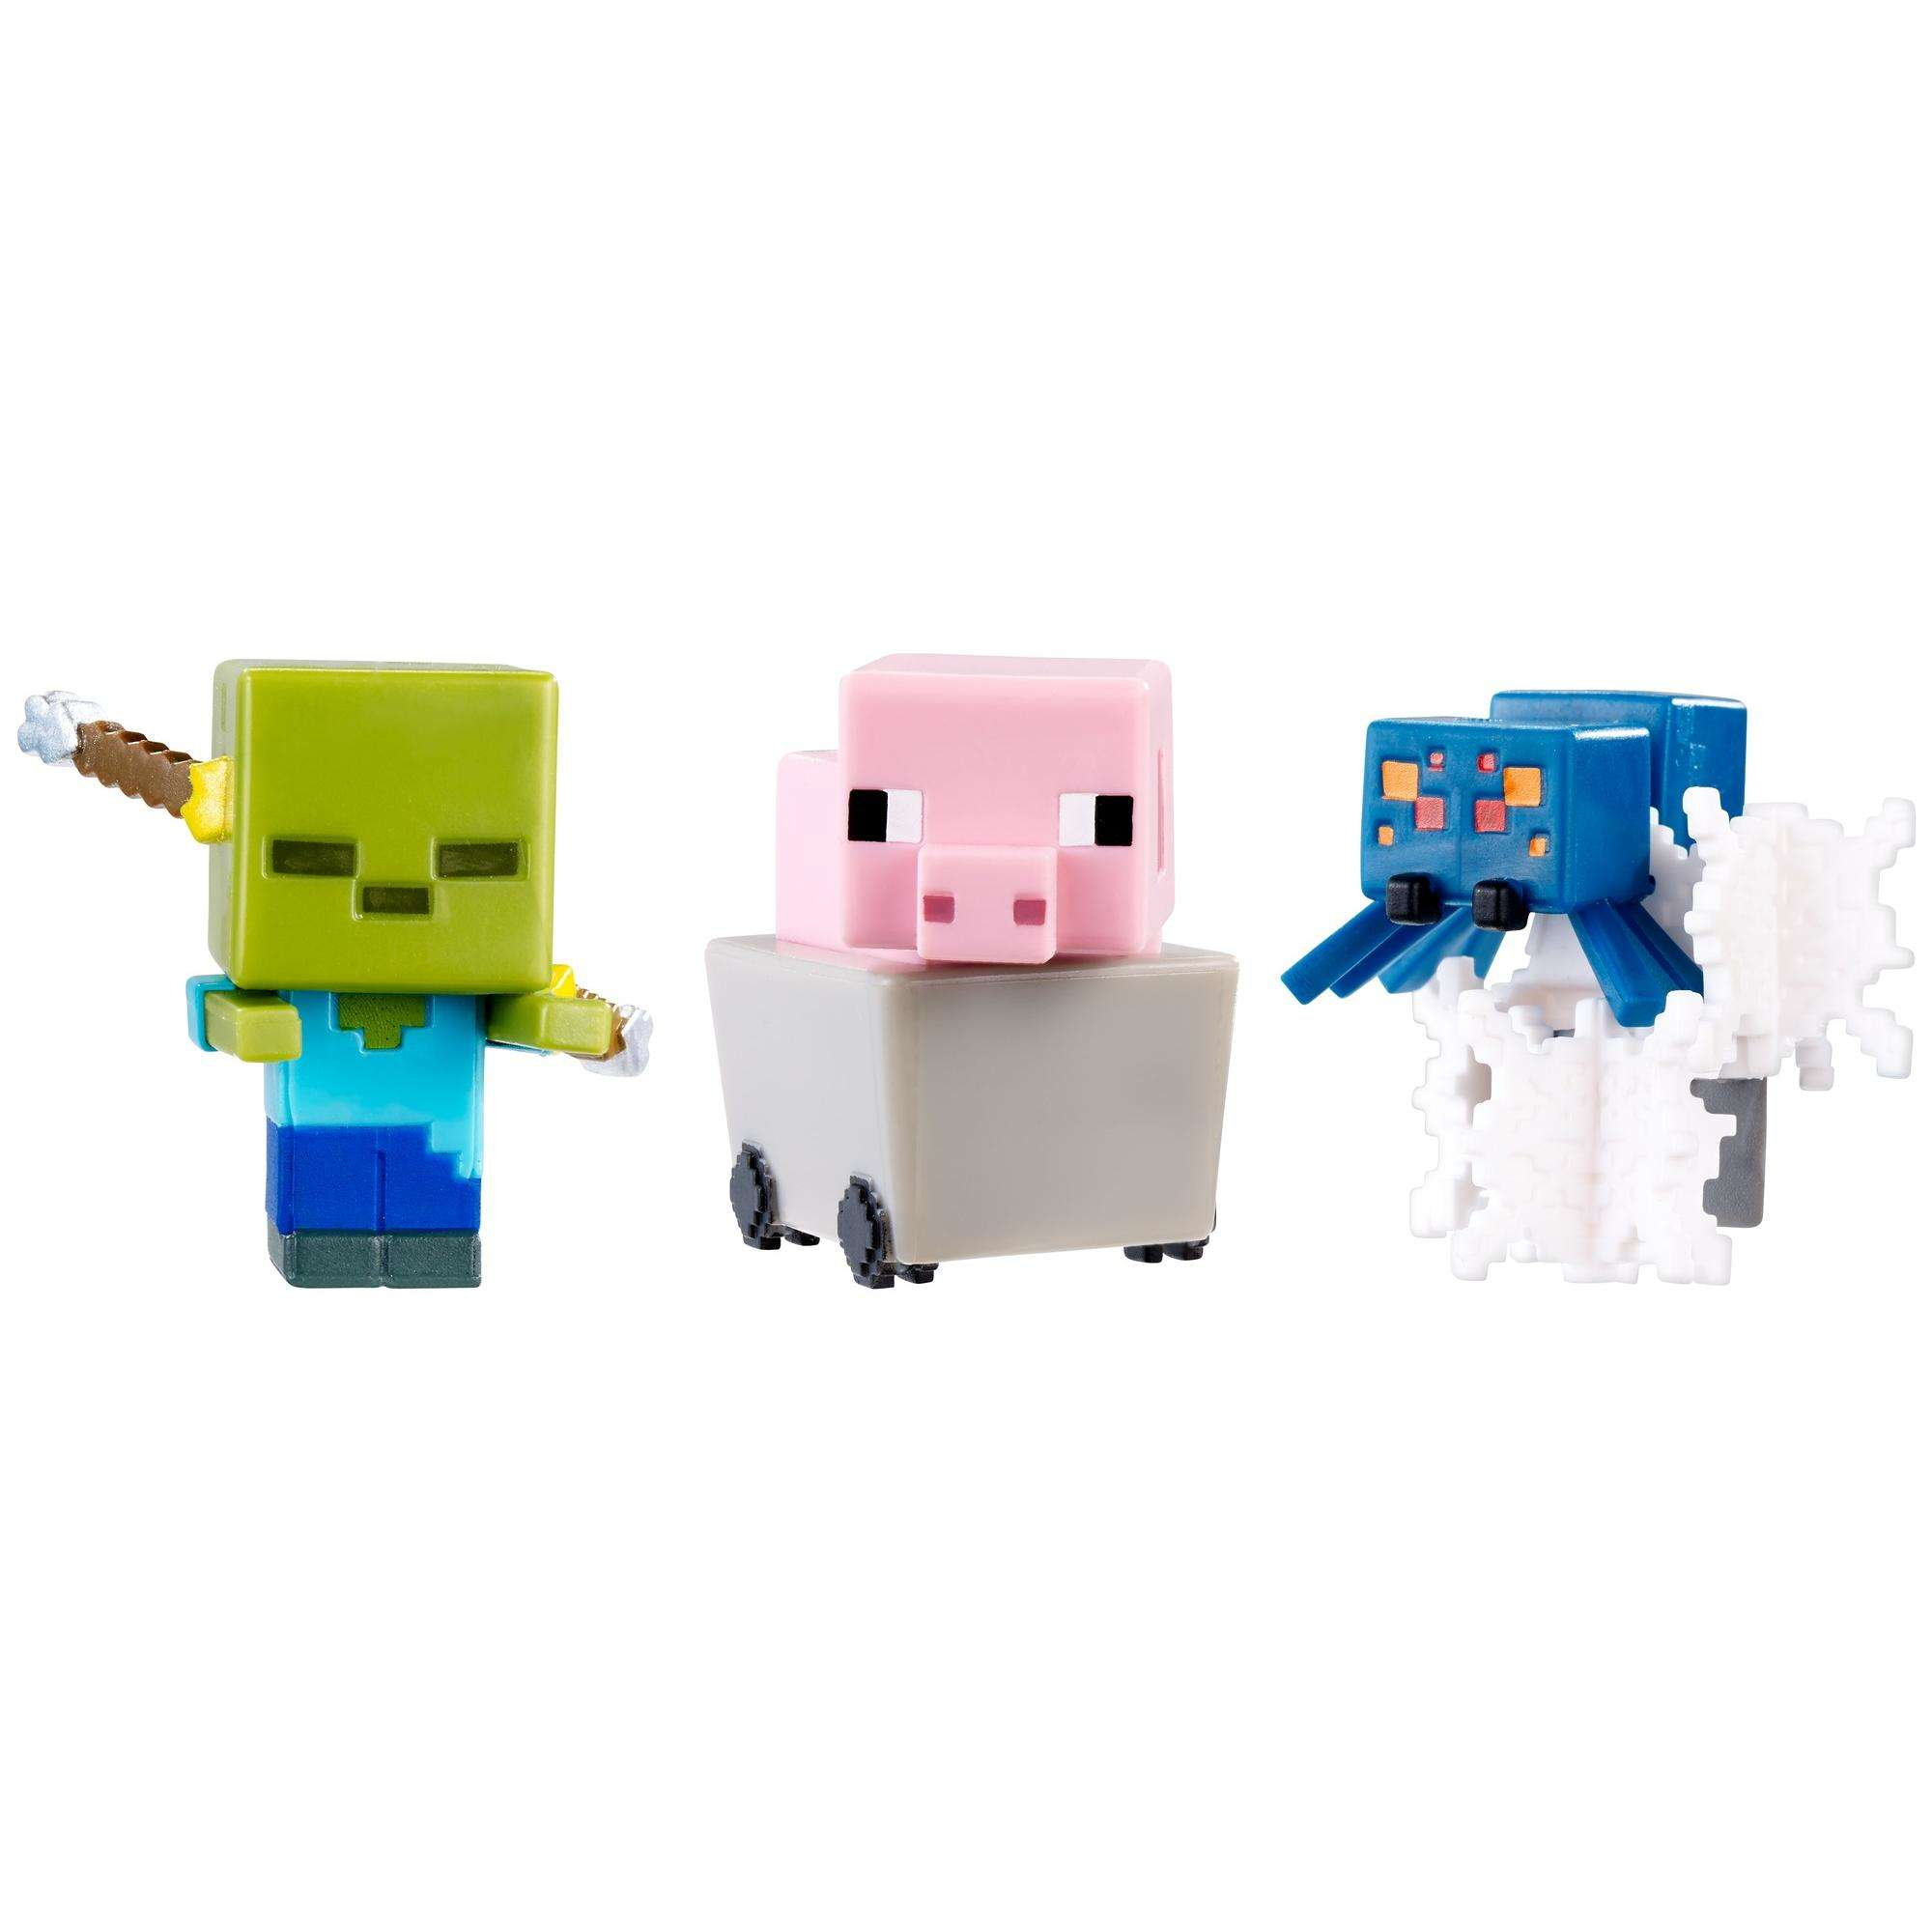 Minecraft Mini Figures 3-Pack Pig In Cart, Spectral DaMage Zombie, Cave Spider In Webs by Mattel, Inc.